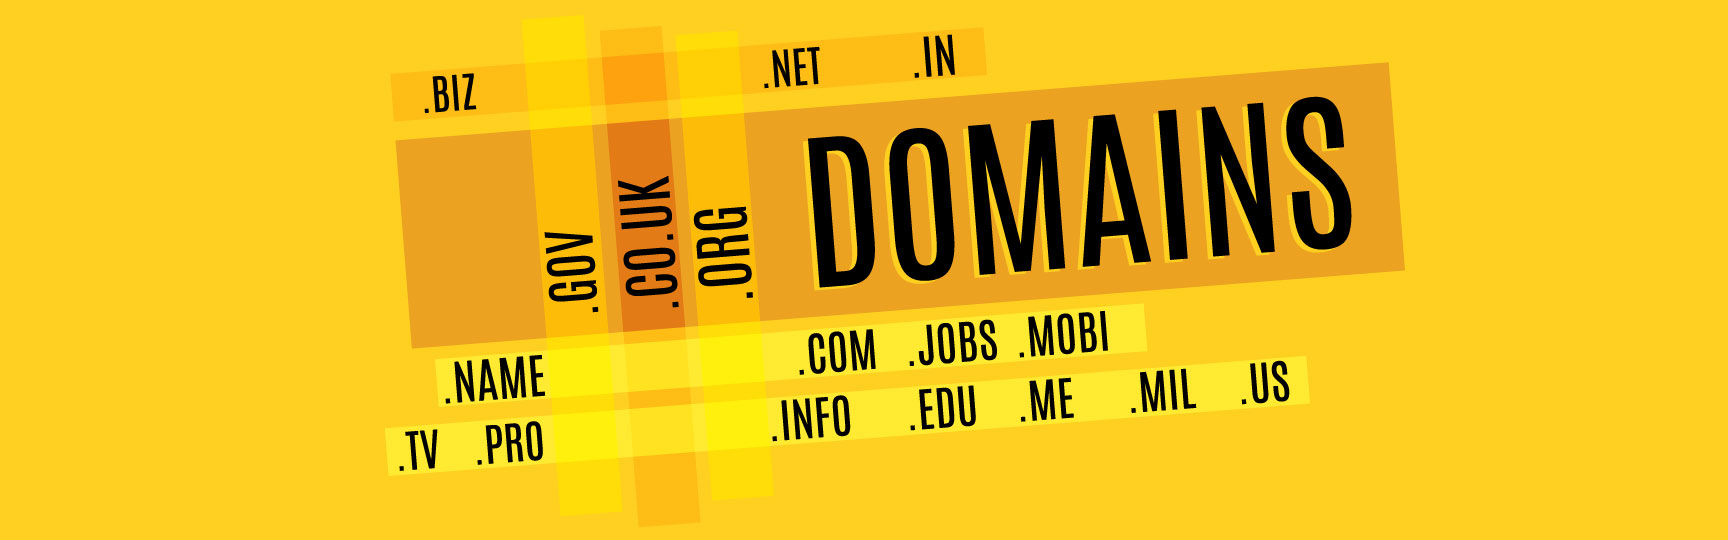 Benefits And Issues With Websites Ending In A Non Dot Com